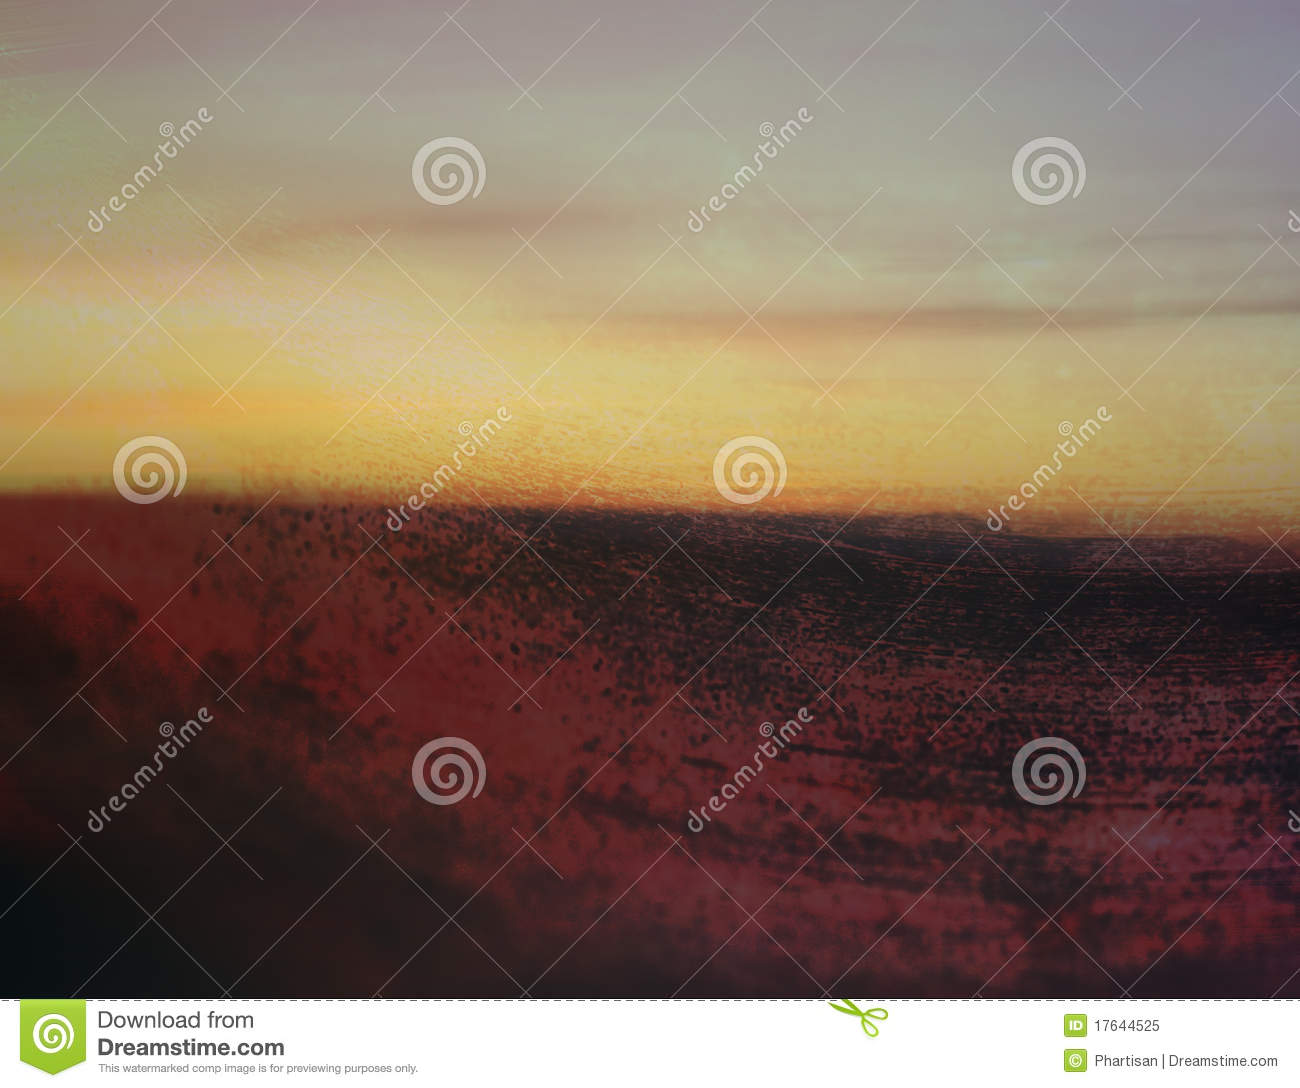 Abstract art grunge landscape background